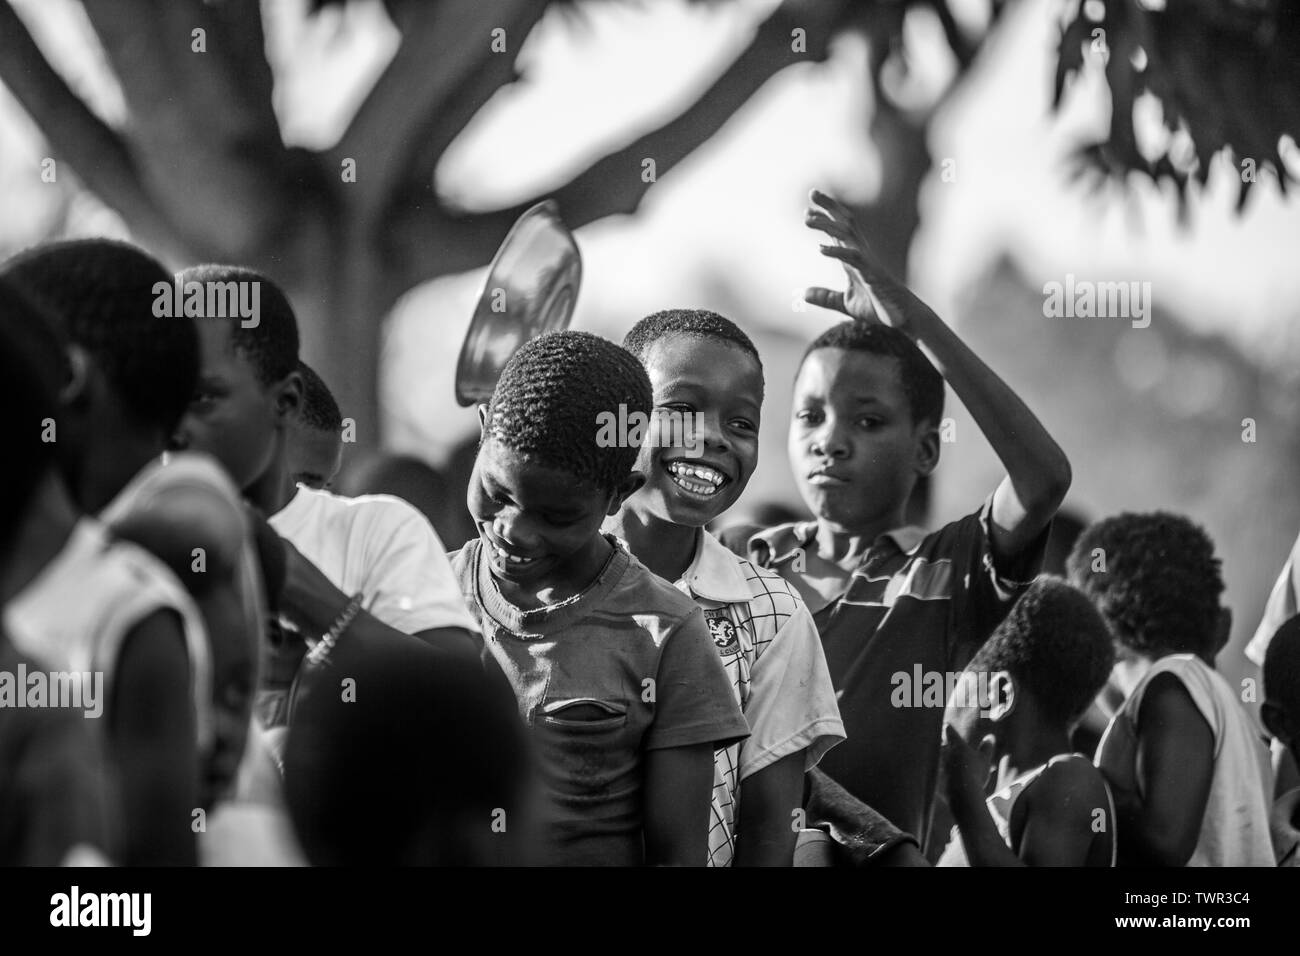 Children smiling and laughing while waiting in line for food - Stock Image